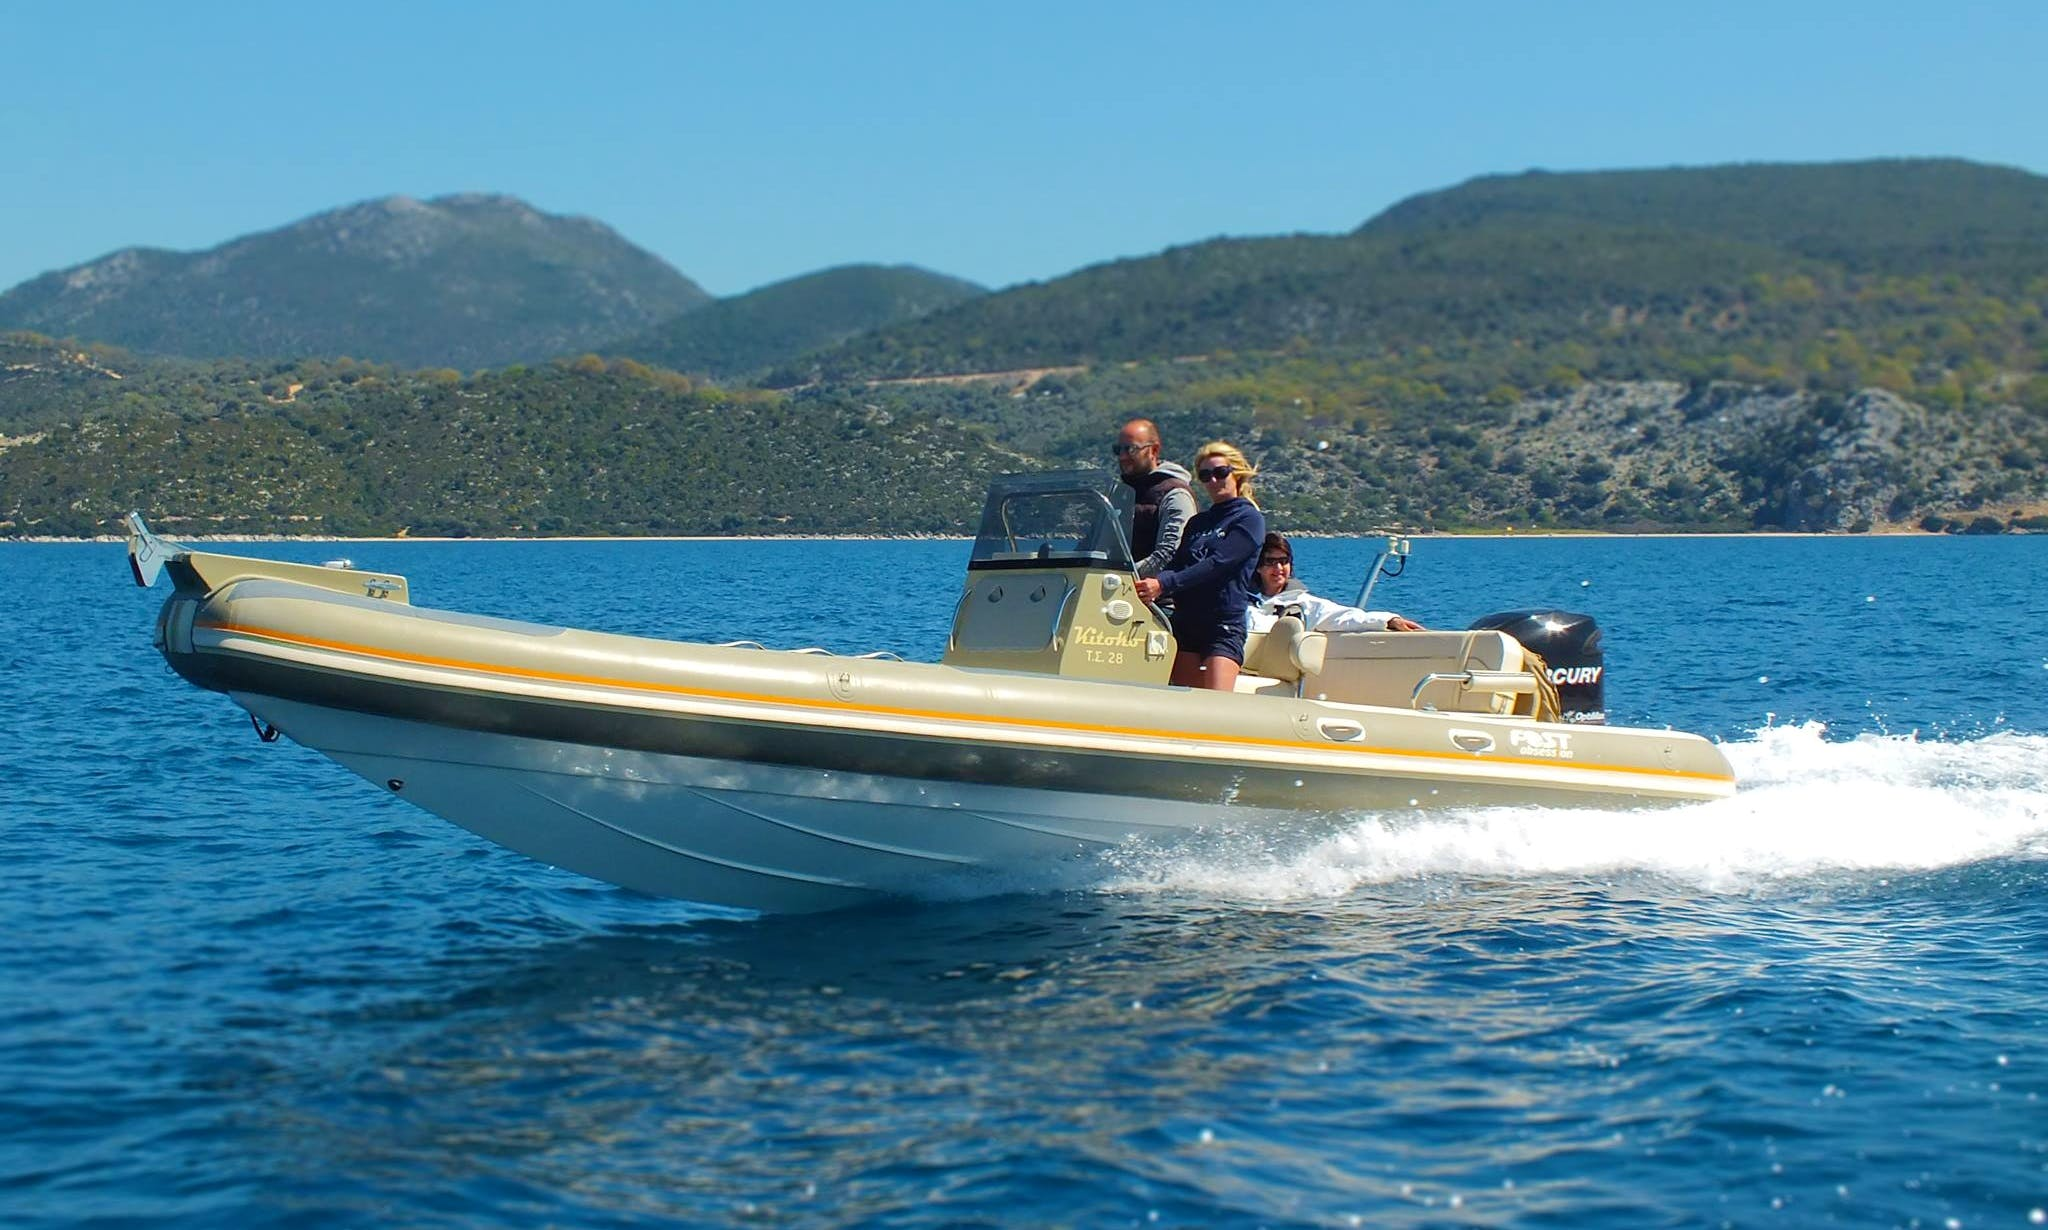 Explore the Ionian Sea with this RIB rental in Lefkada, Greece